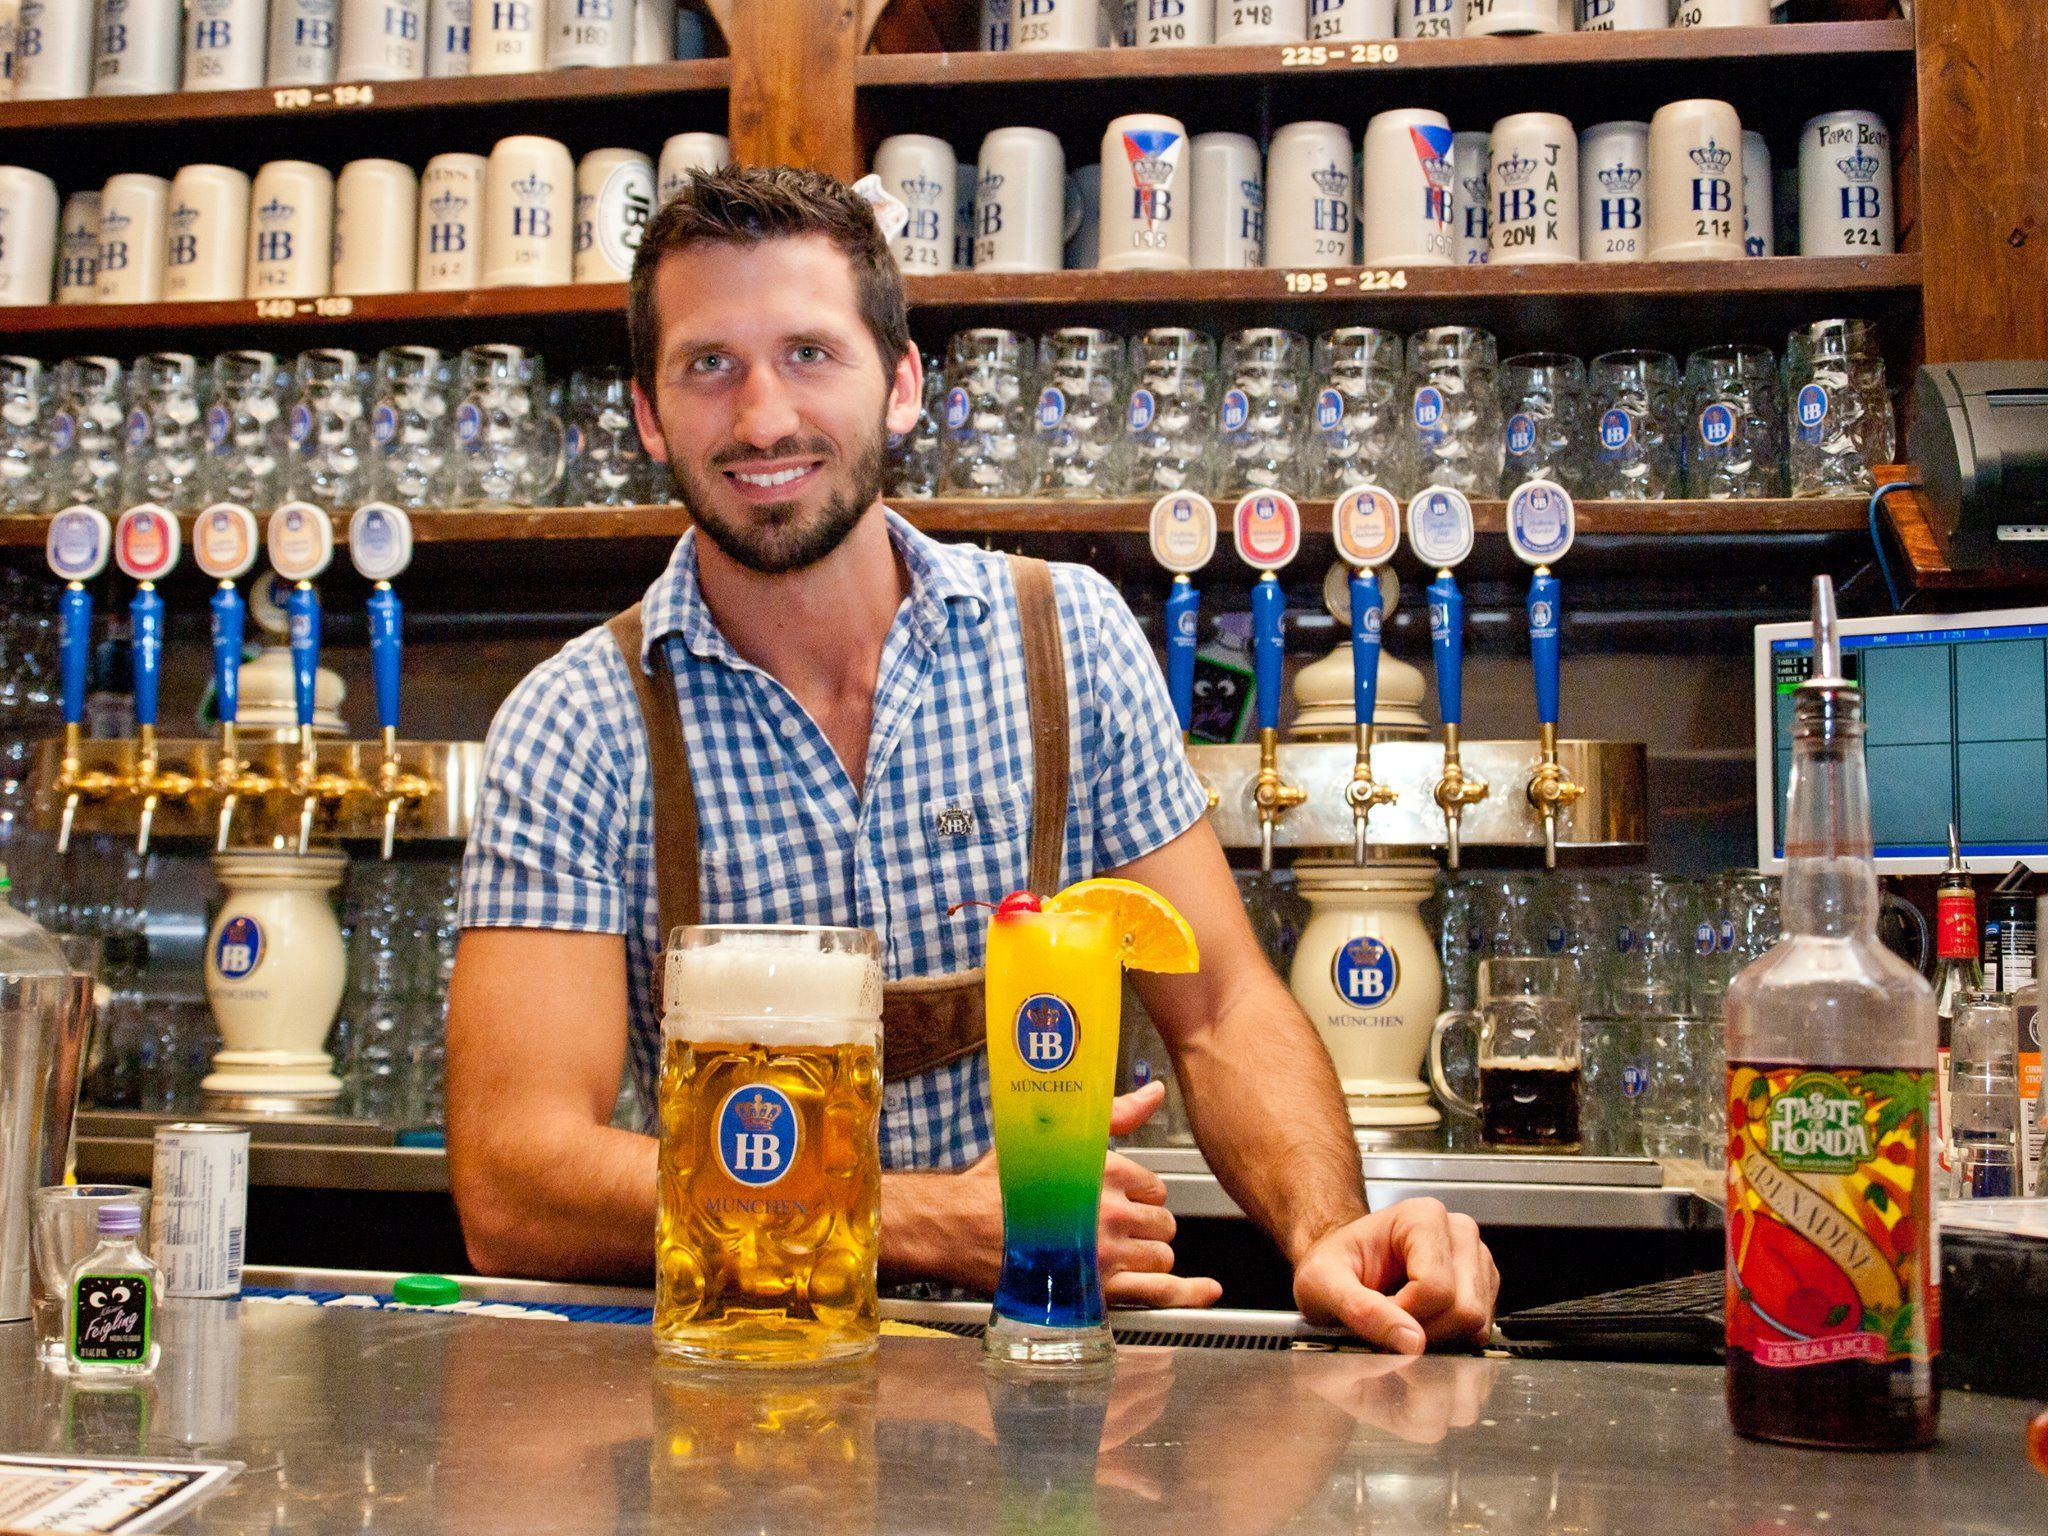 Meet the Mixologist at Hofbr u Beer garden, Mixologist